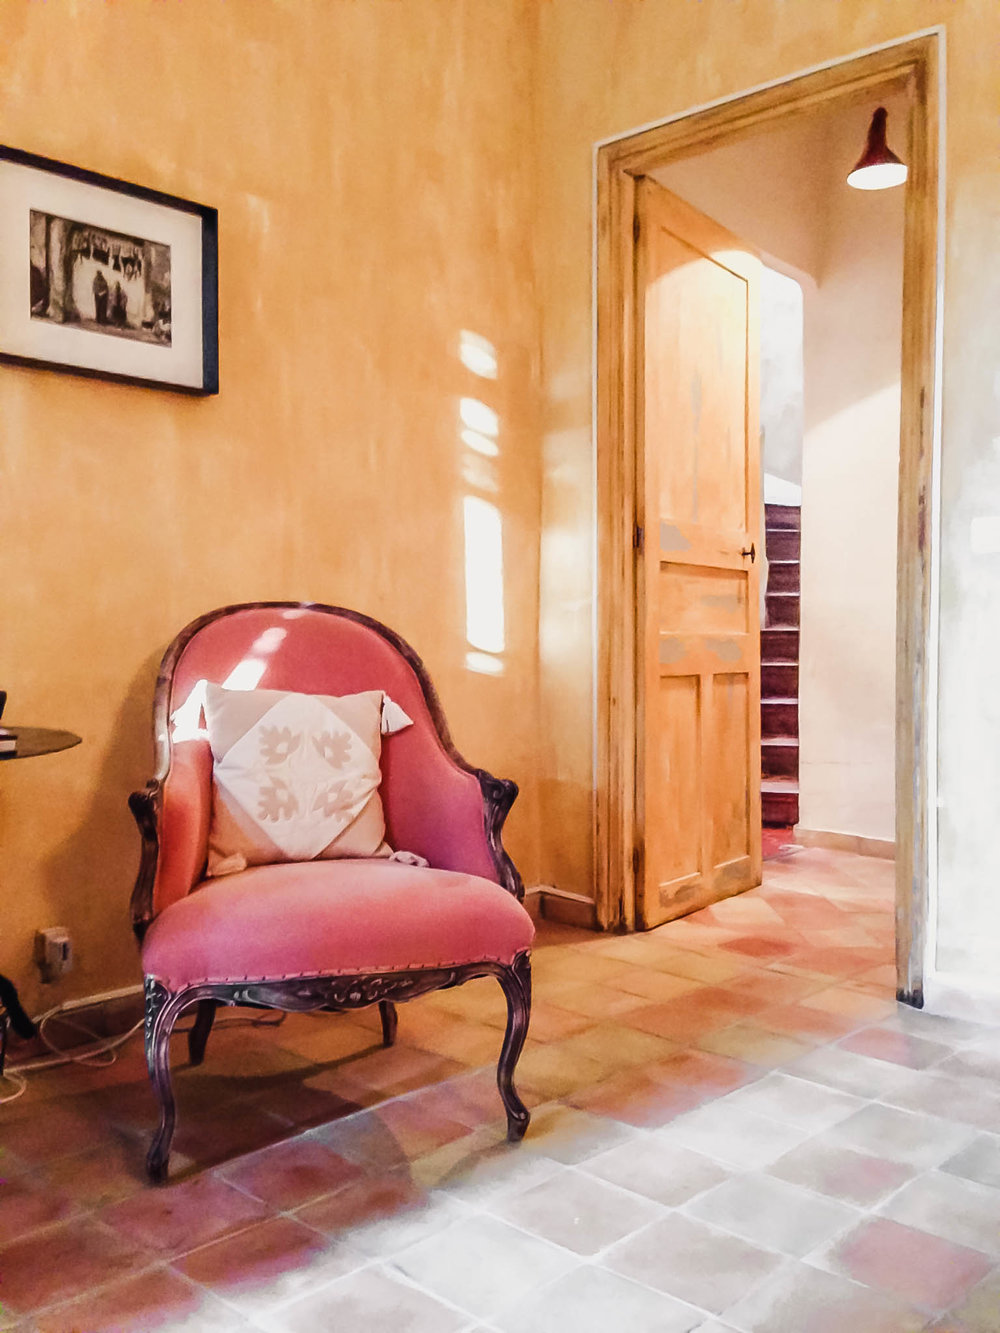 chair inside elegant house in provence, france